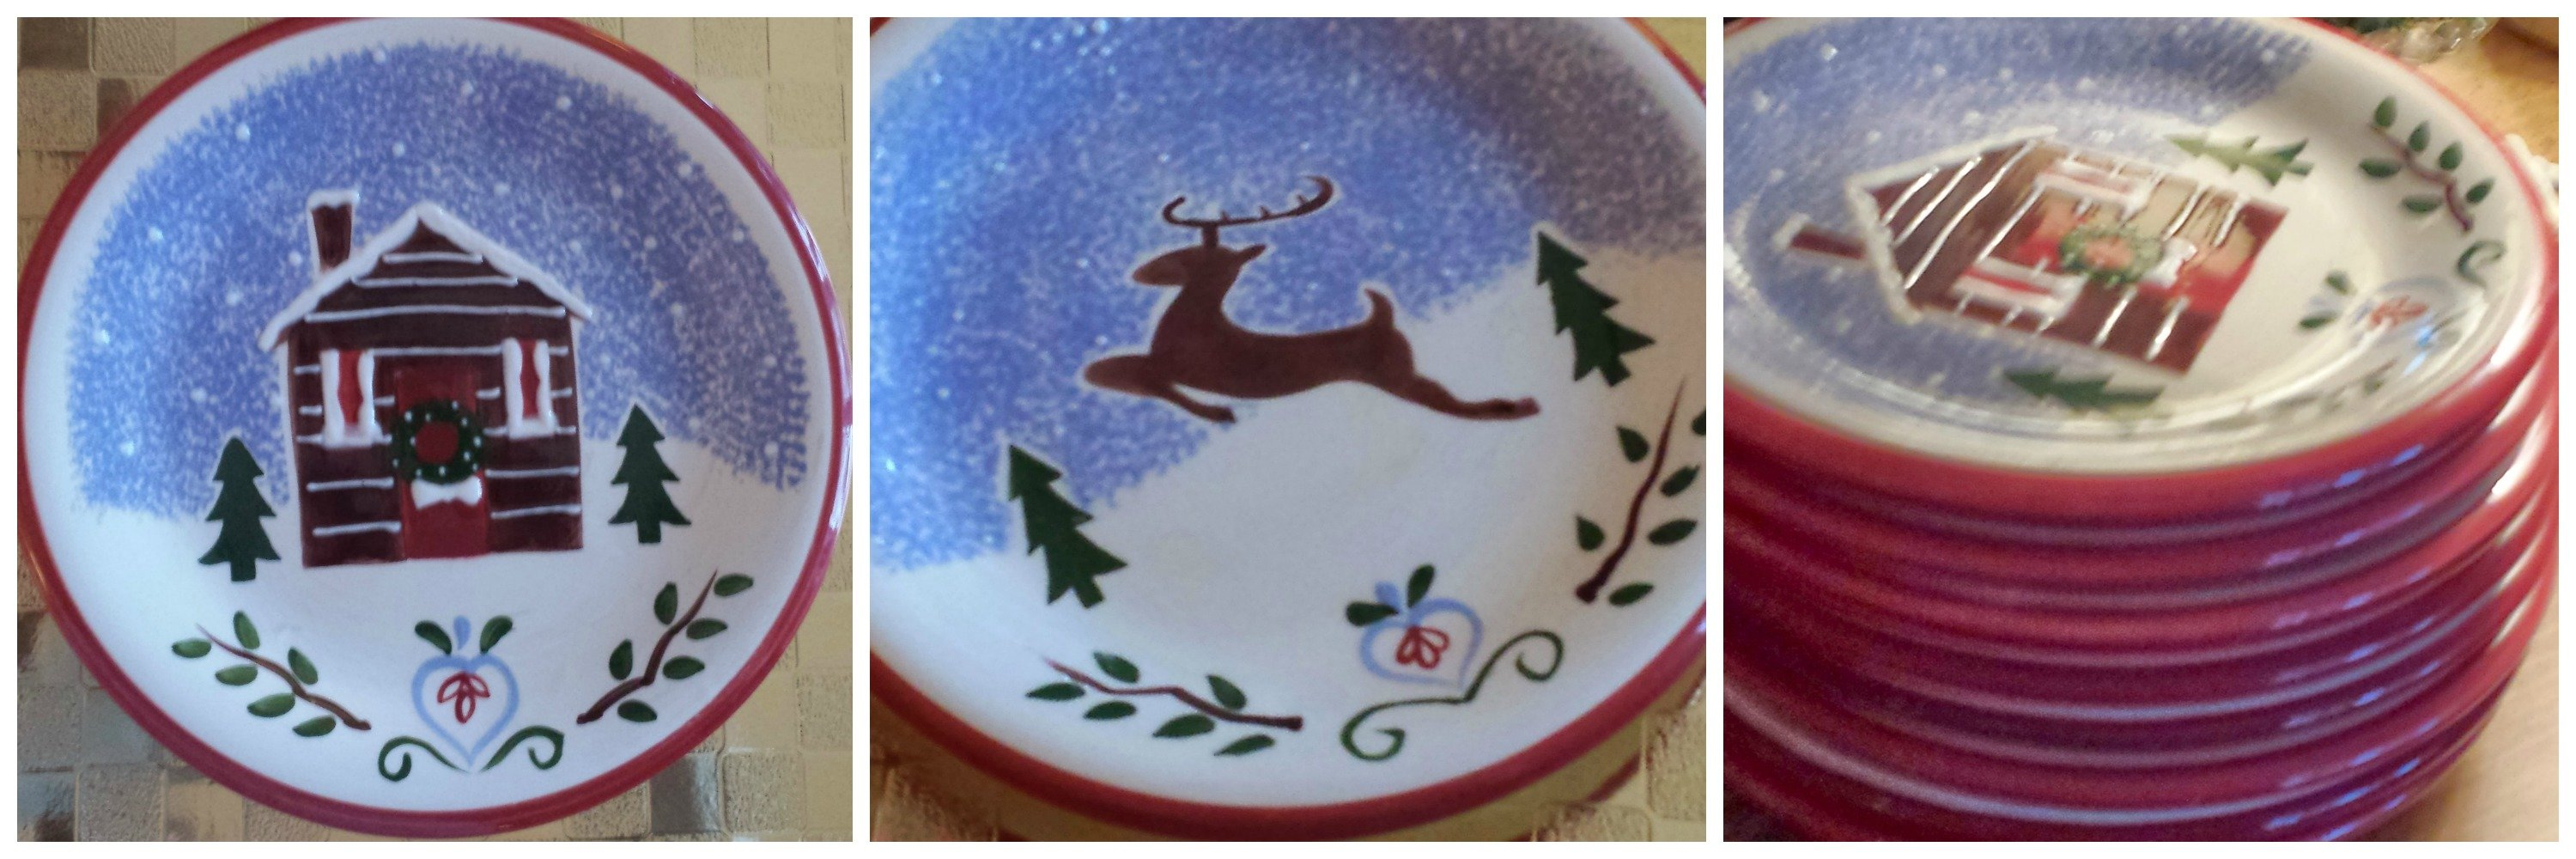 Christmas Dinnerware & Christmas Angels On High - Christmas Decorating Home Tour